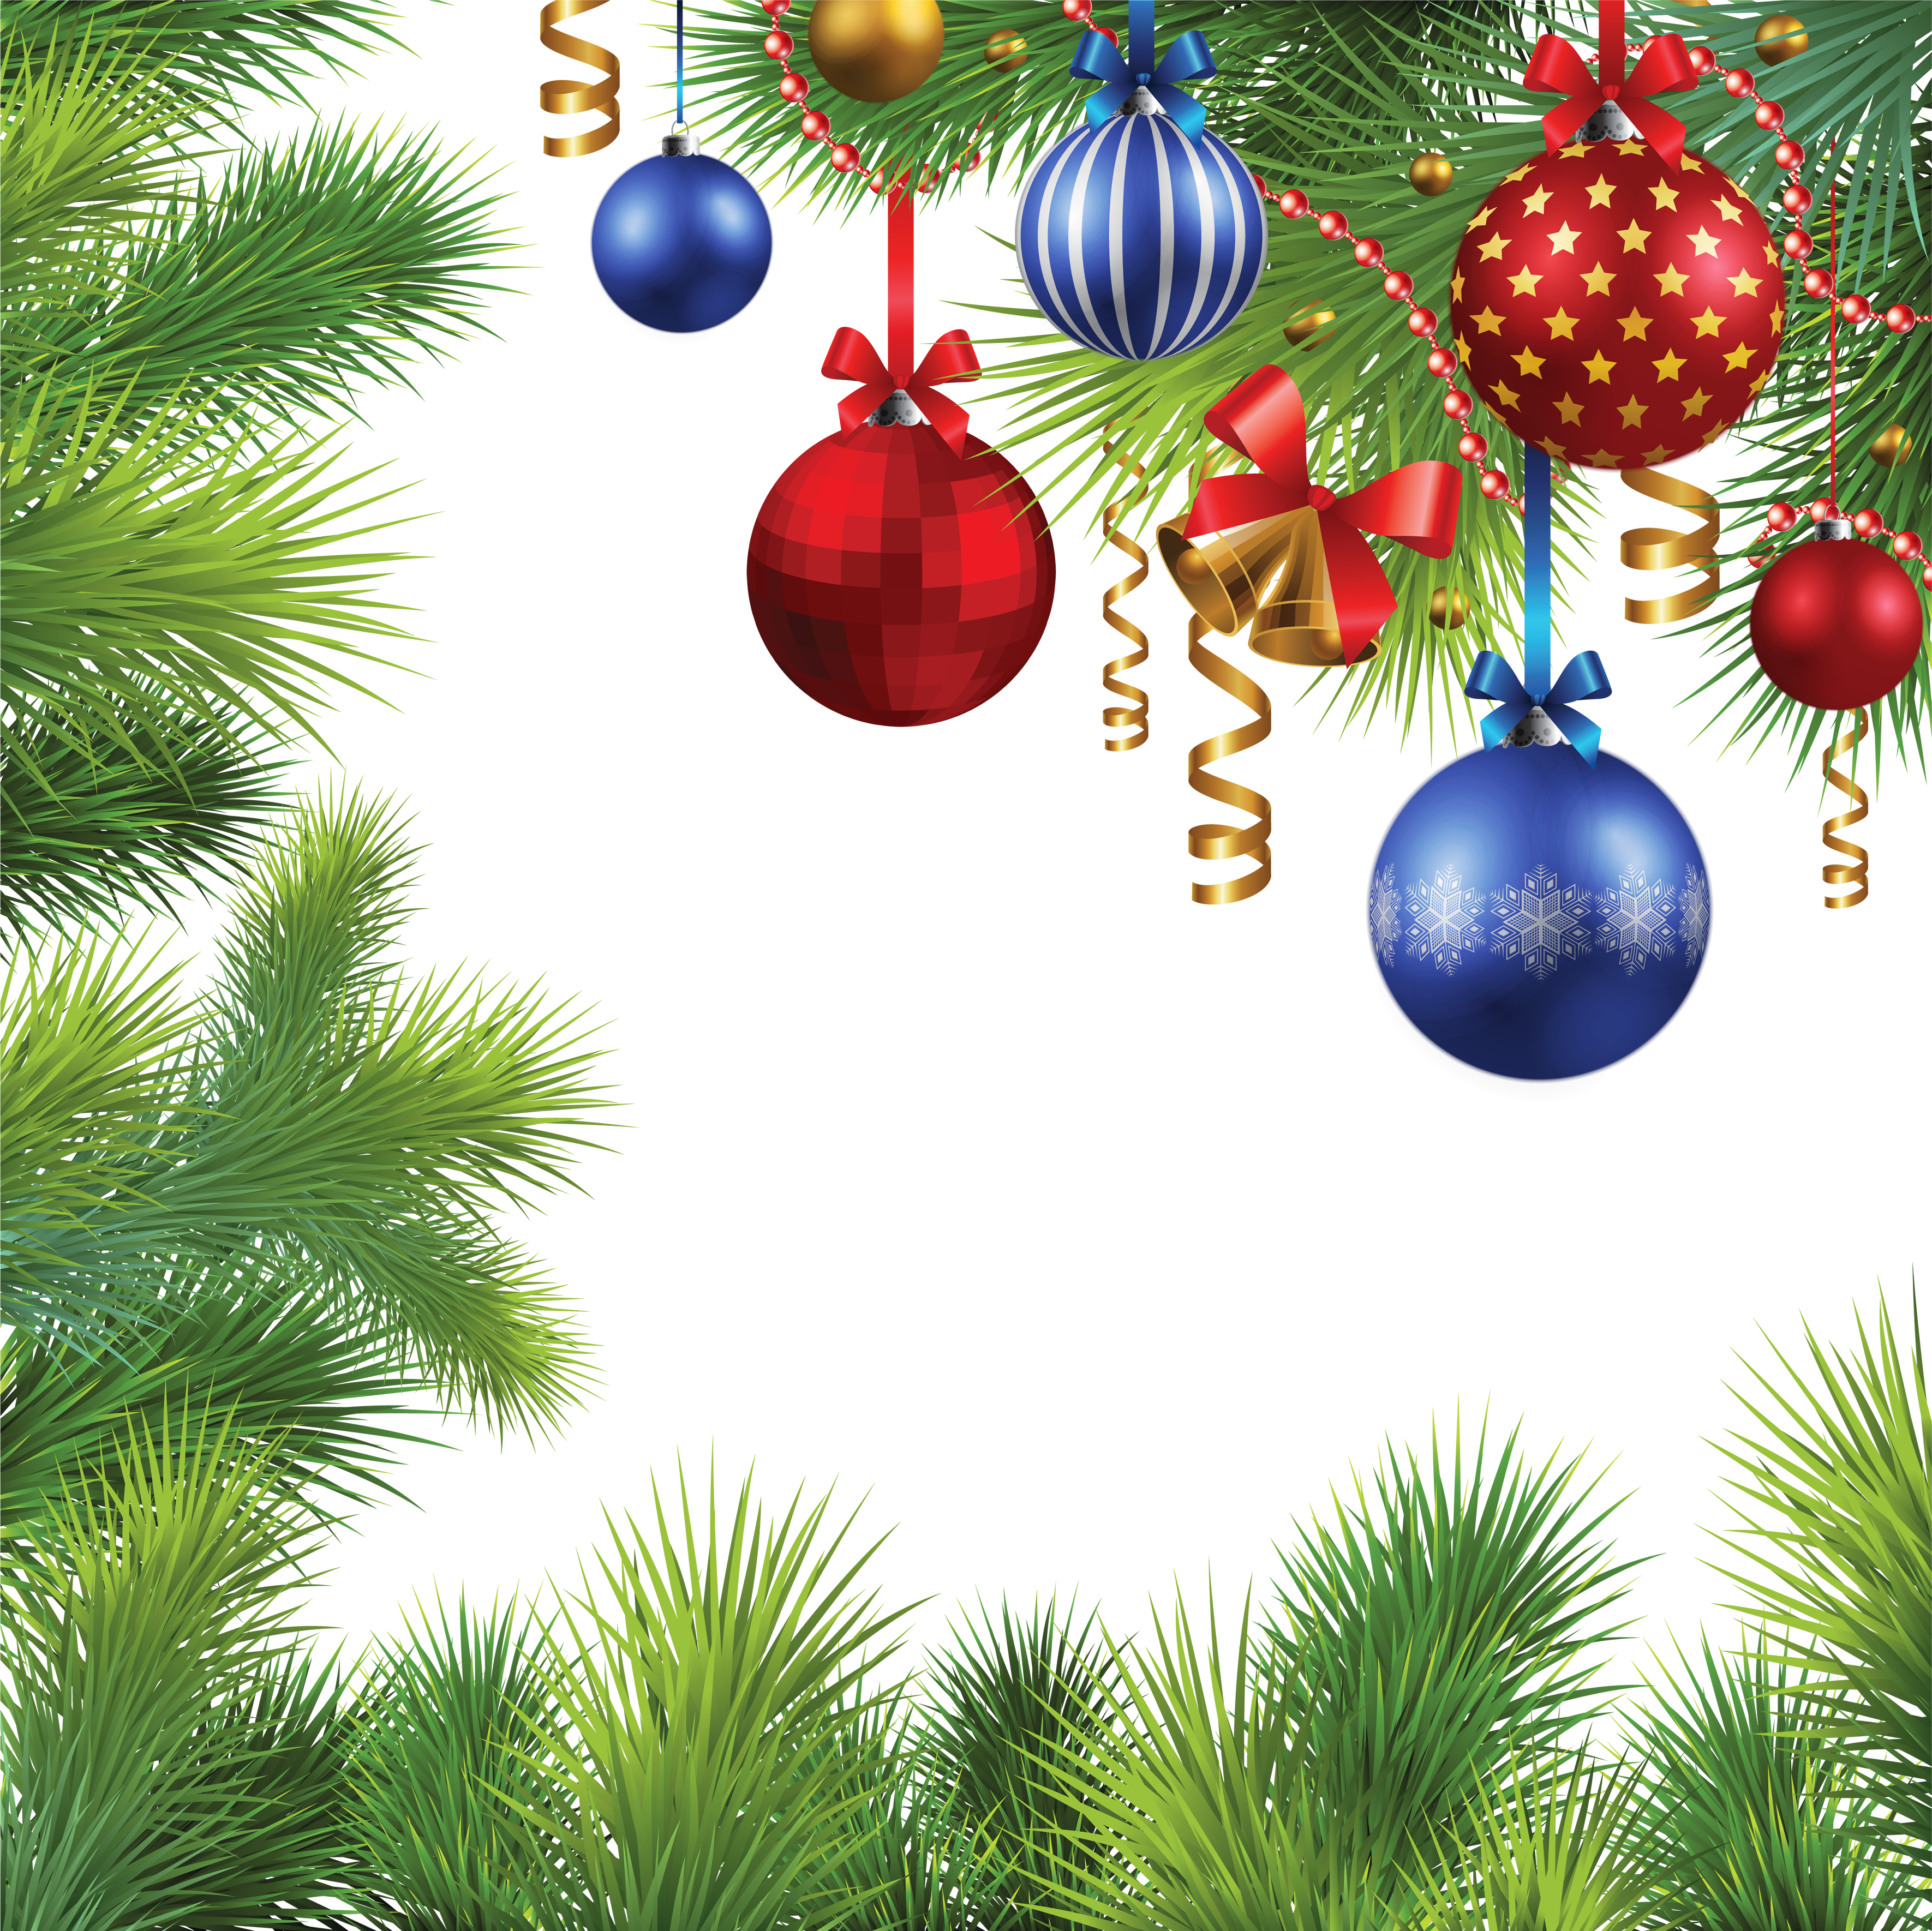 Christmas balls, tree frame png #35312 - Free Icons and PNG Backgrounds